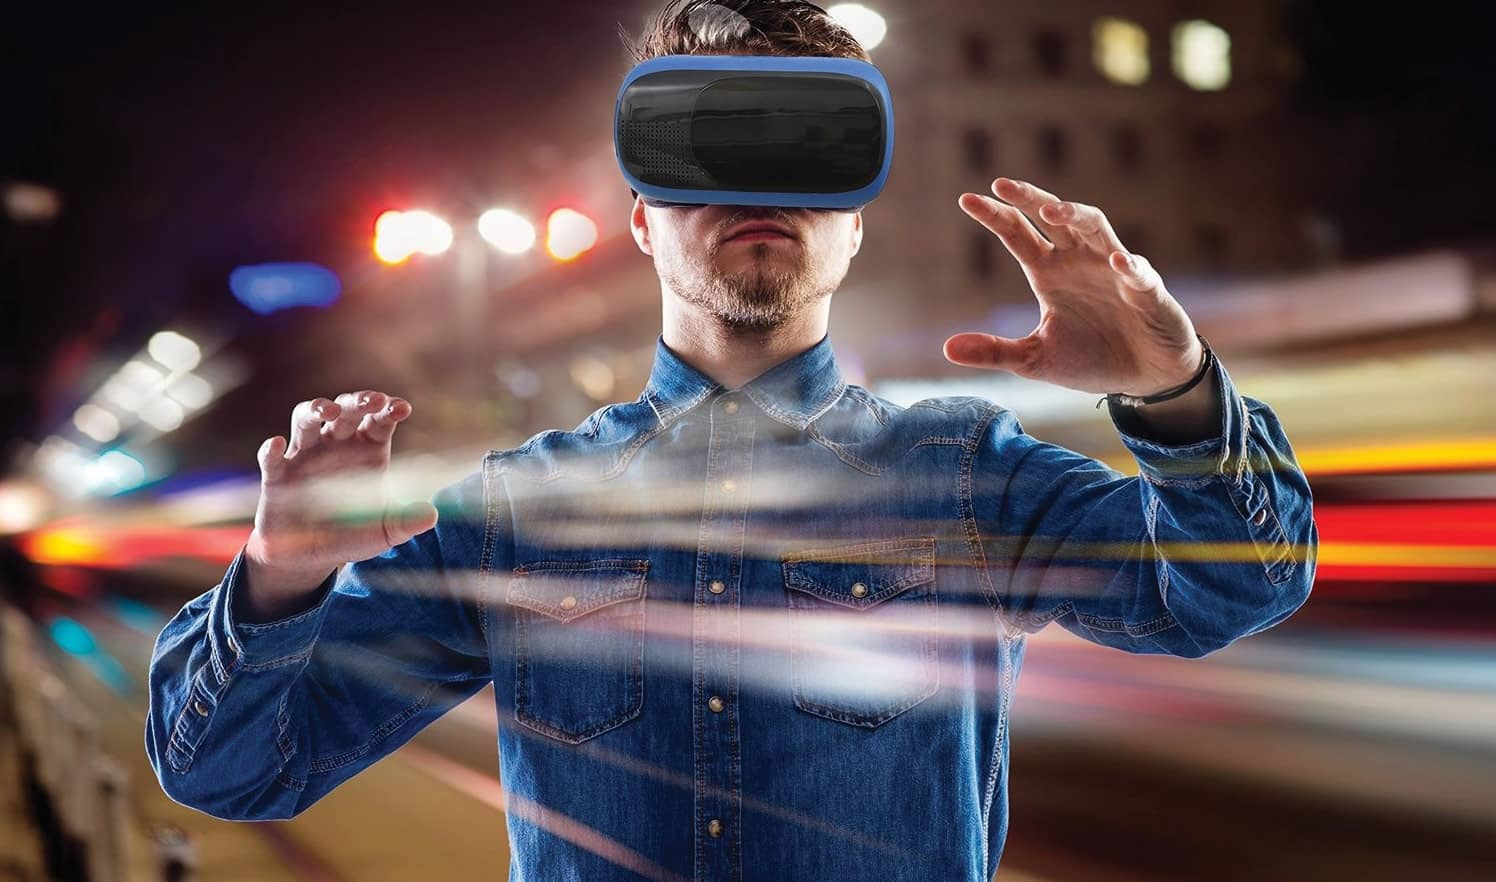 VR/AR Are Not Future Tech — They're Already Reshaping The World